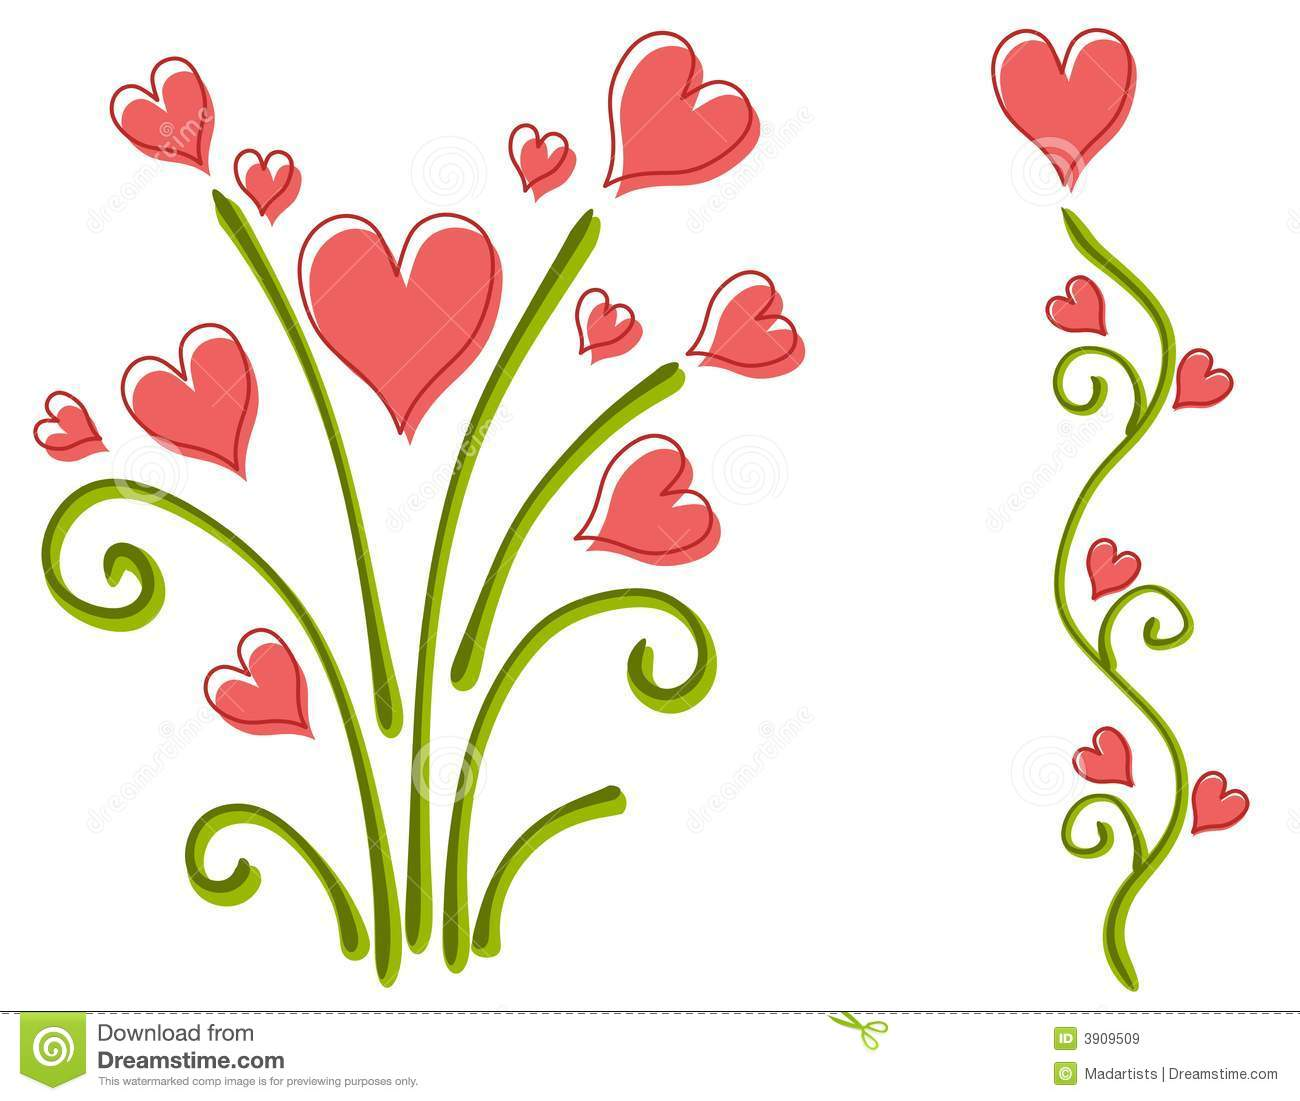 Clipart flowers and hearts 1 » Clipart Station.